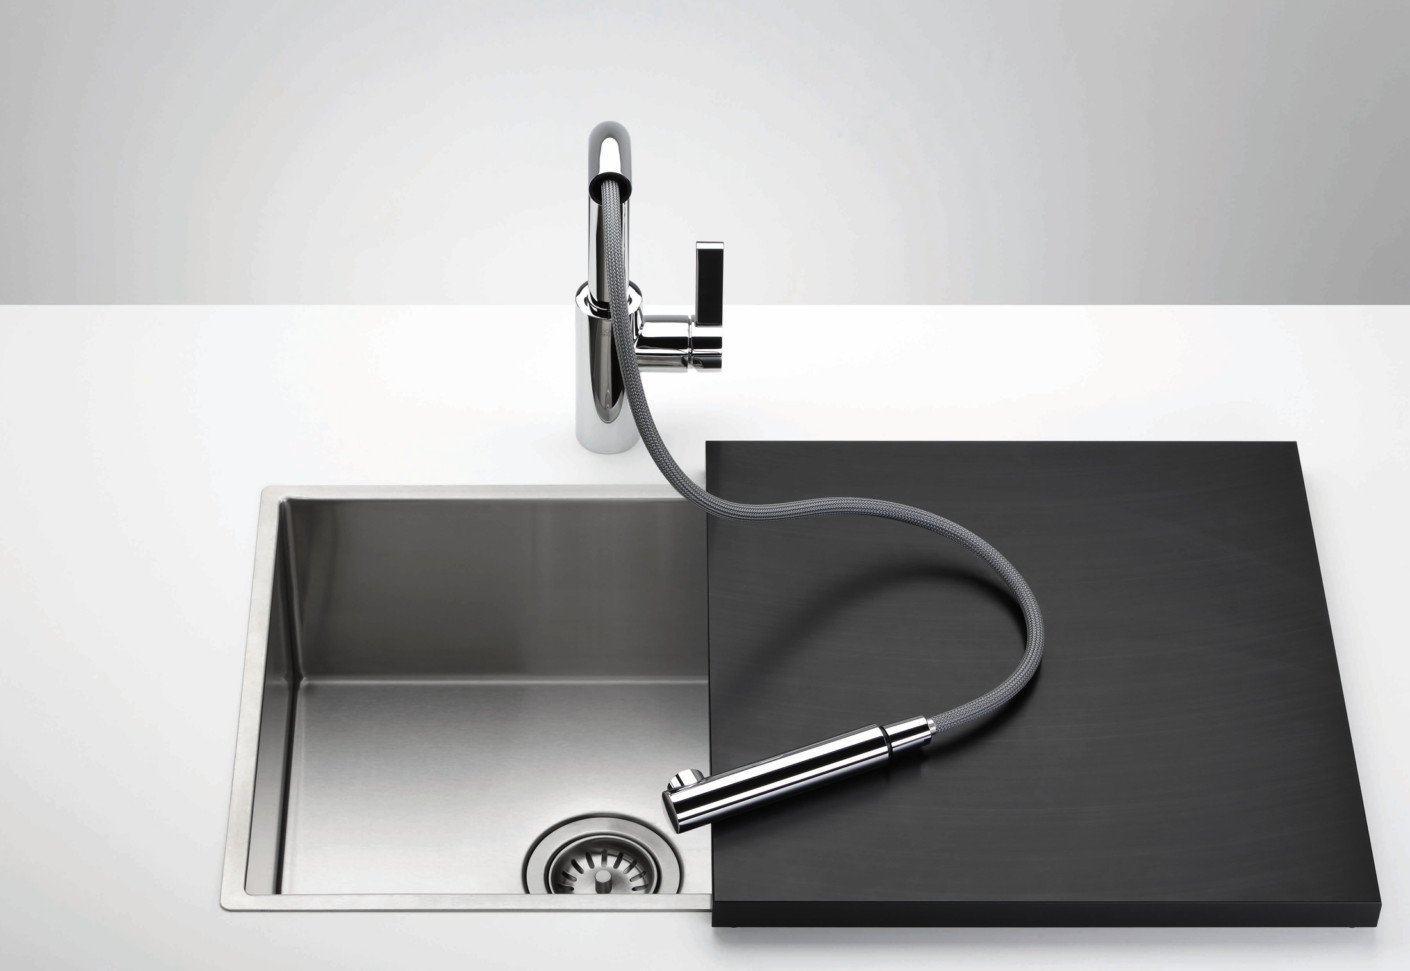 Elio single-lever mixer with retractable tip by Dornbracht | STYLEPARK